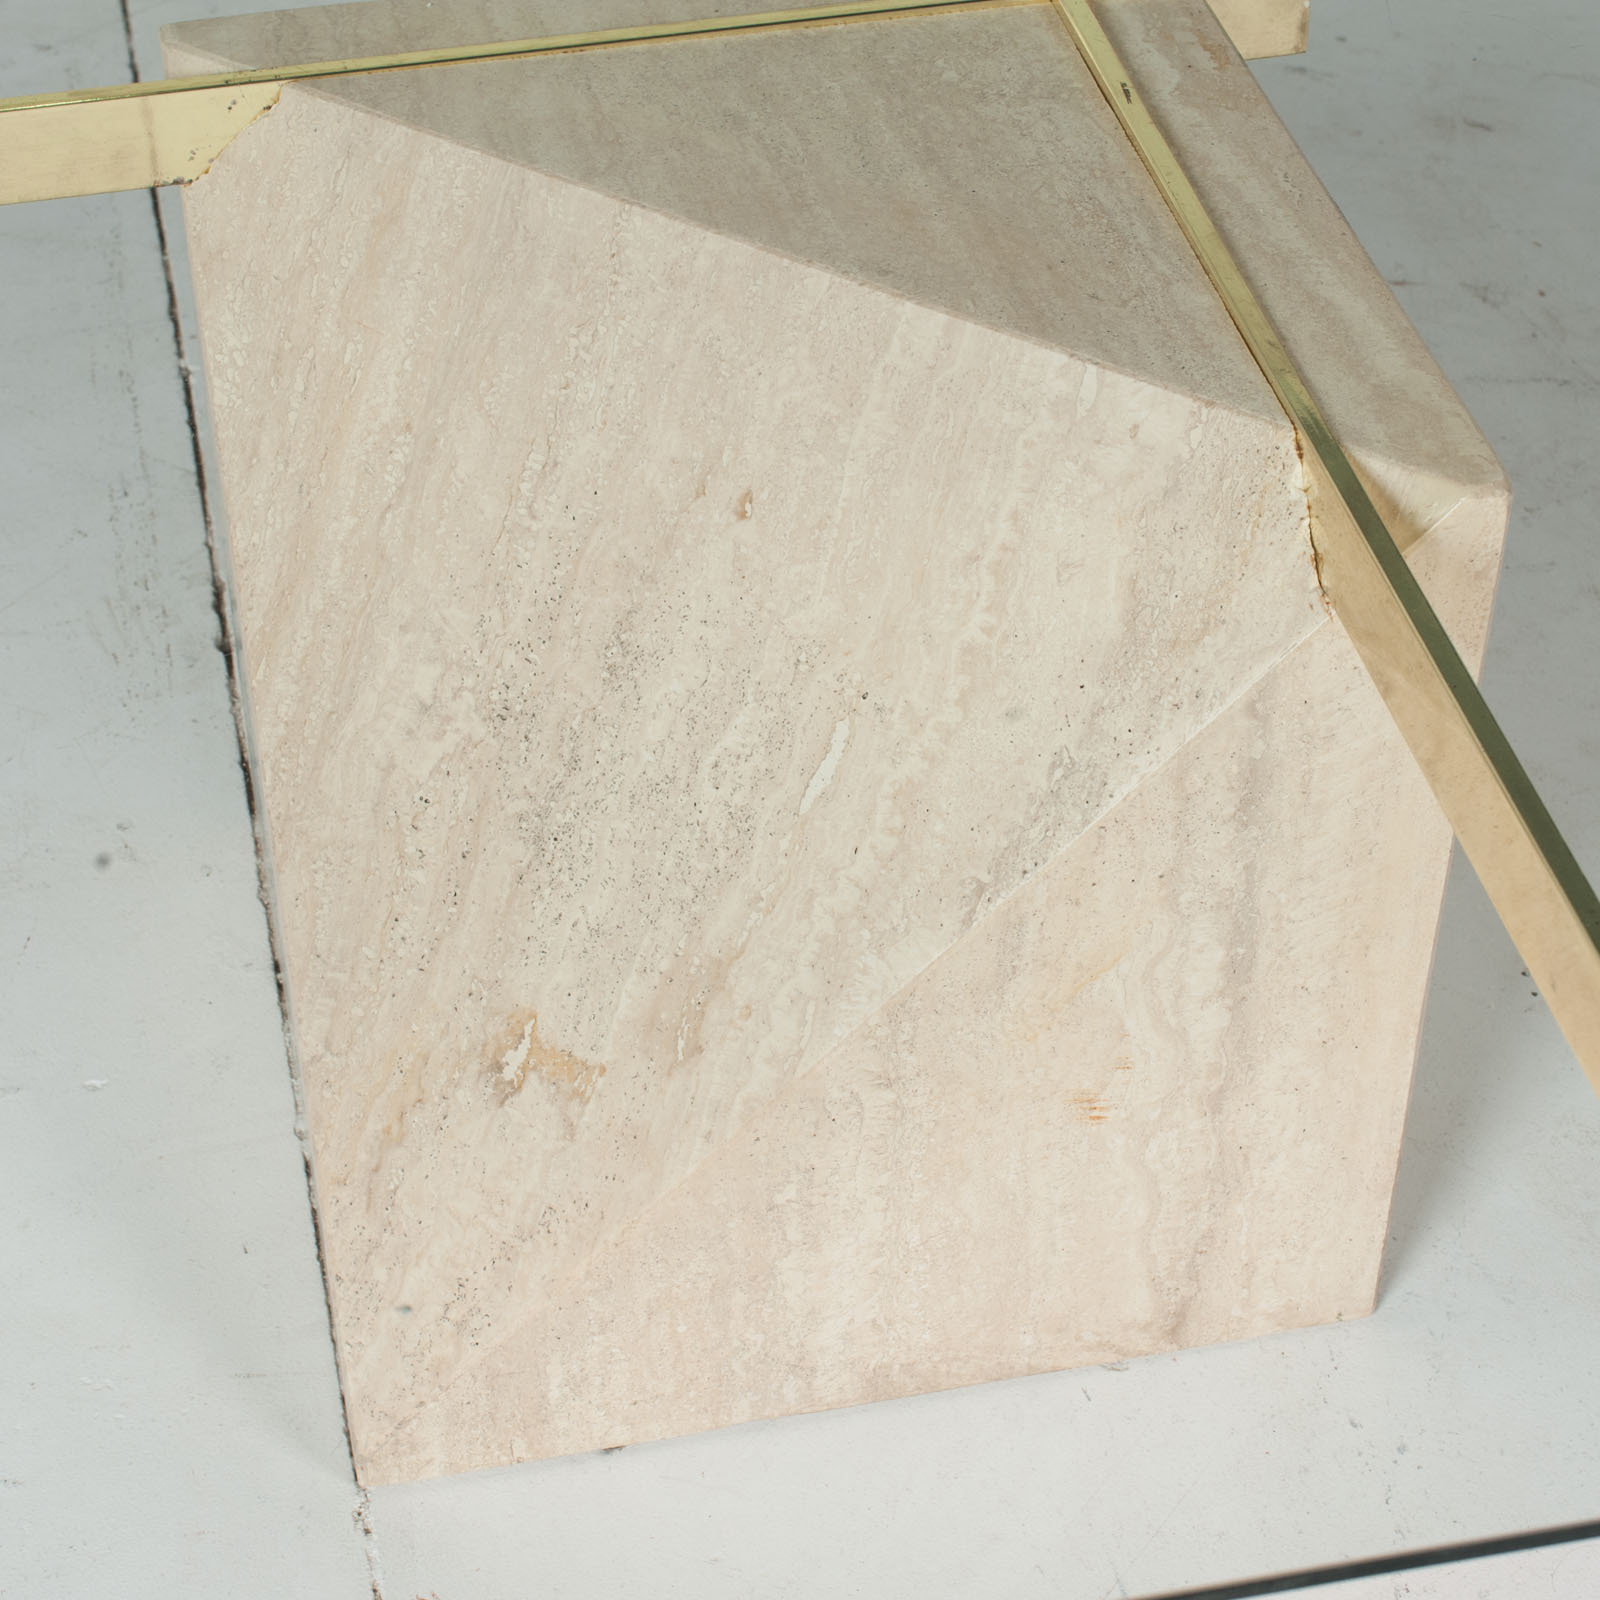 Coffee Table By Artedi In Travertine, Cantilevered Glass And Brass, 1970s, Italy6